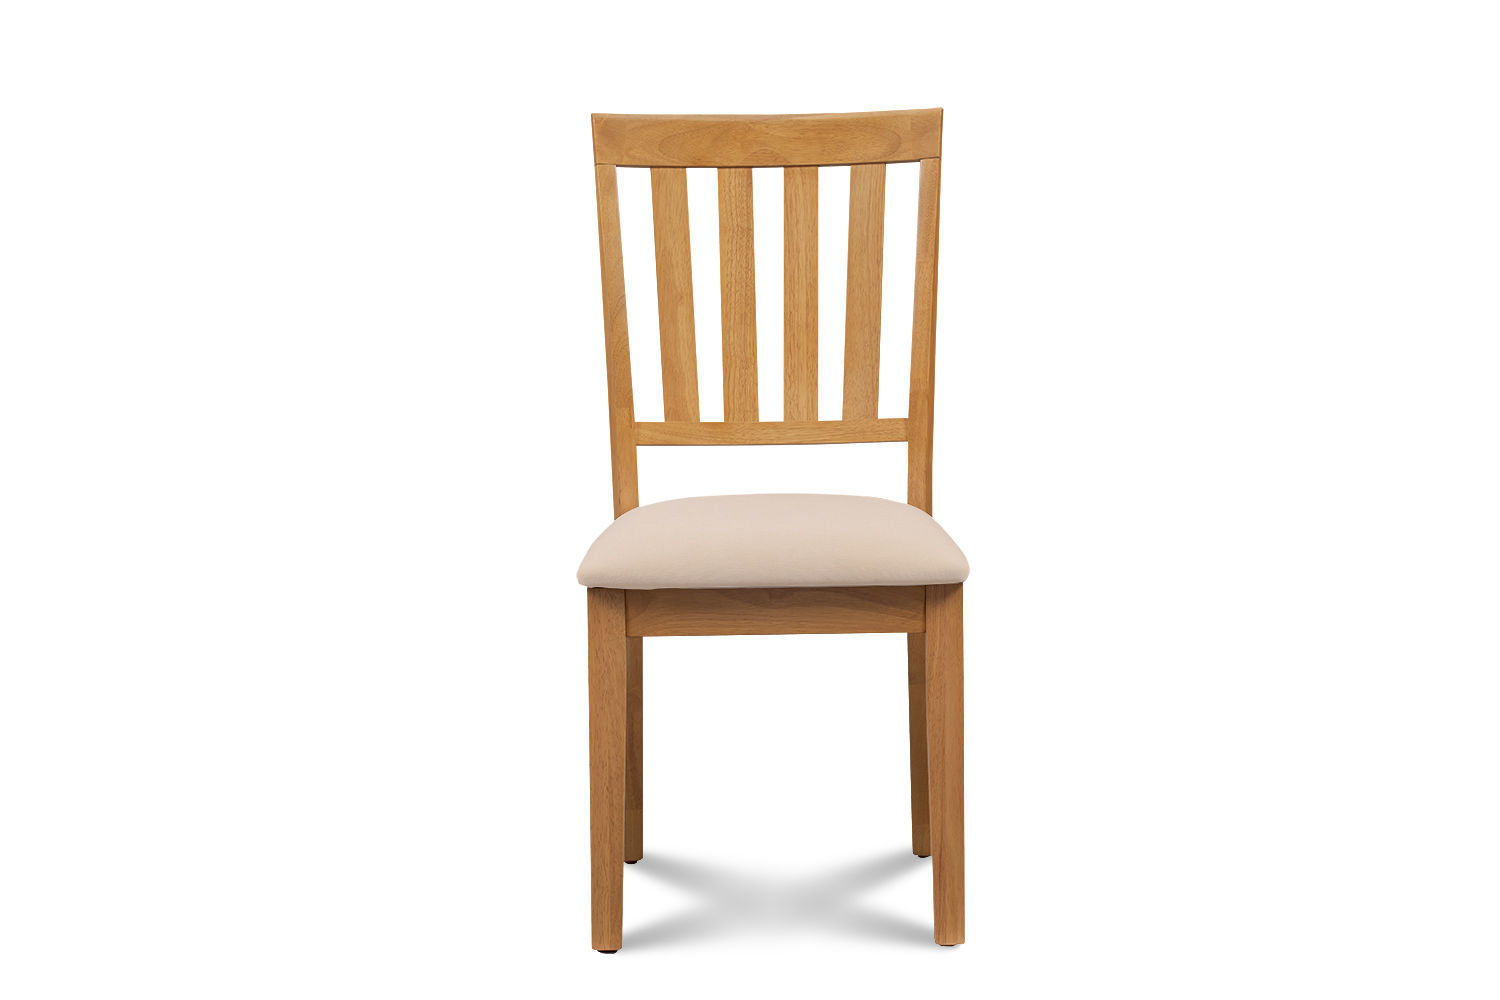 SET OF 4 MOCHA KITCHEN DINING CHAIRS WITH SOFT-PADDED SEAT IN OAK FINISH